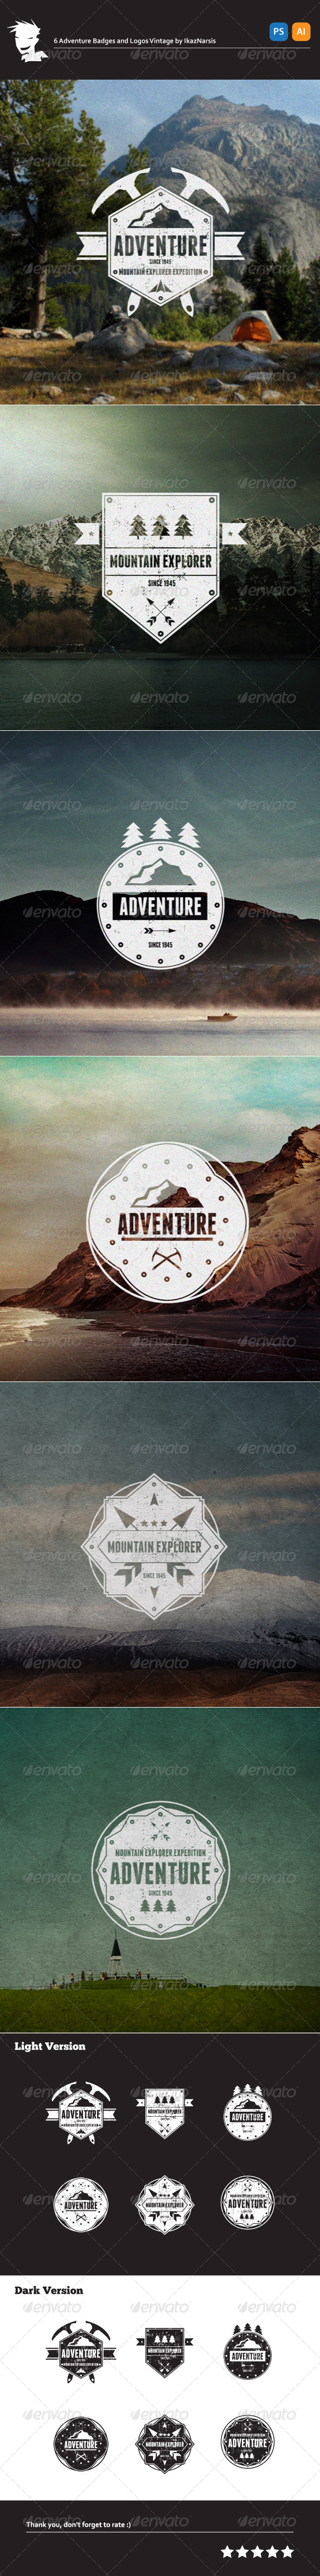 6 Adventure Badges and Logos Vintage - Badges & Stickers Web Elements